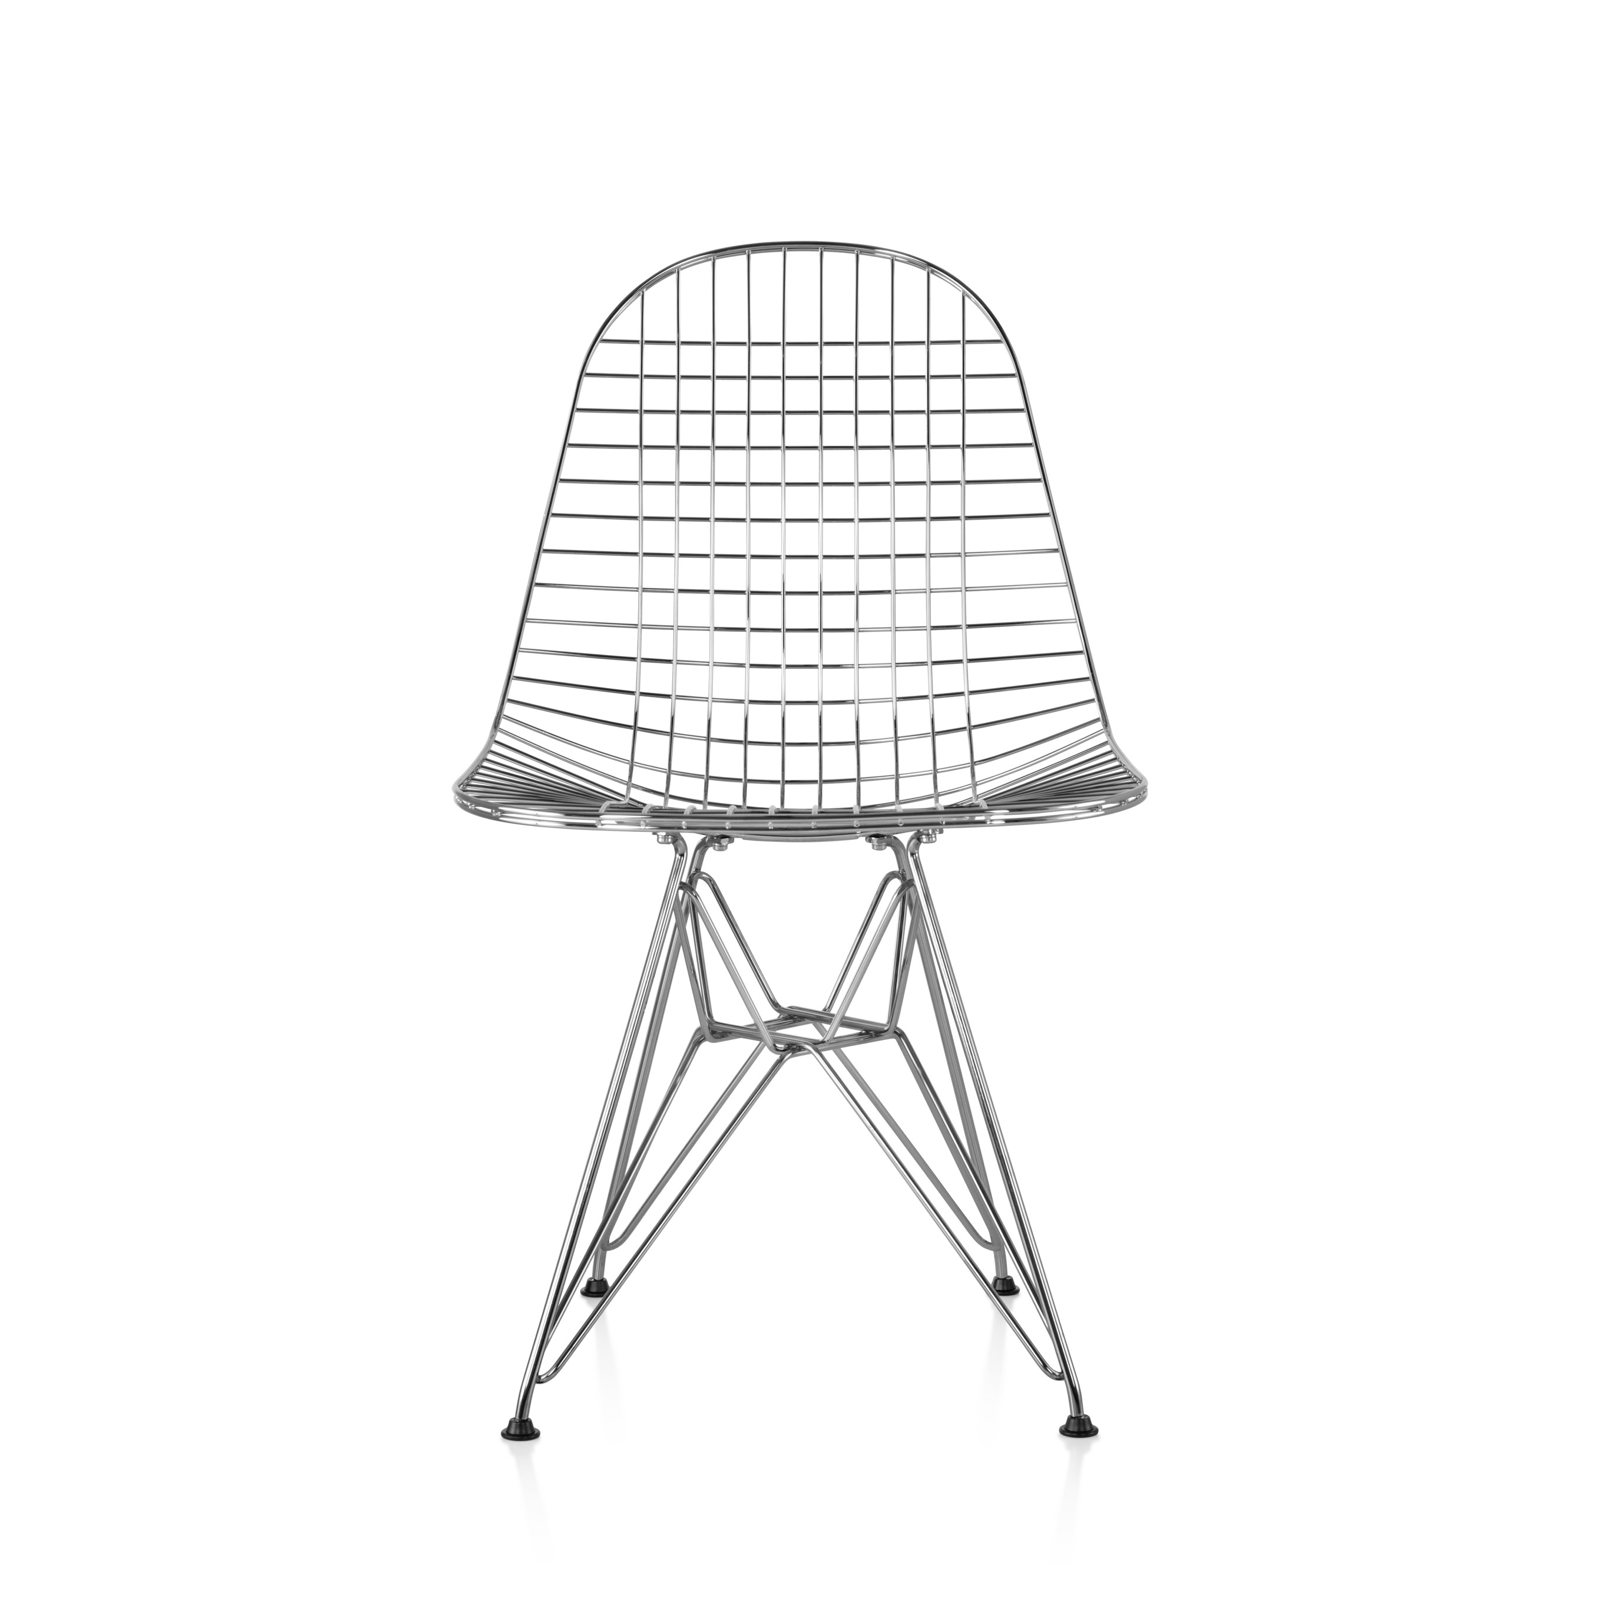 Eames wire chair by charles ray eames for herman miller up eames wire chair by charles ray eames for herman miller keyboard keysfo Gallery